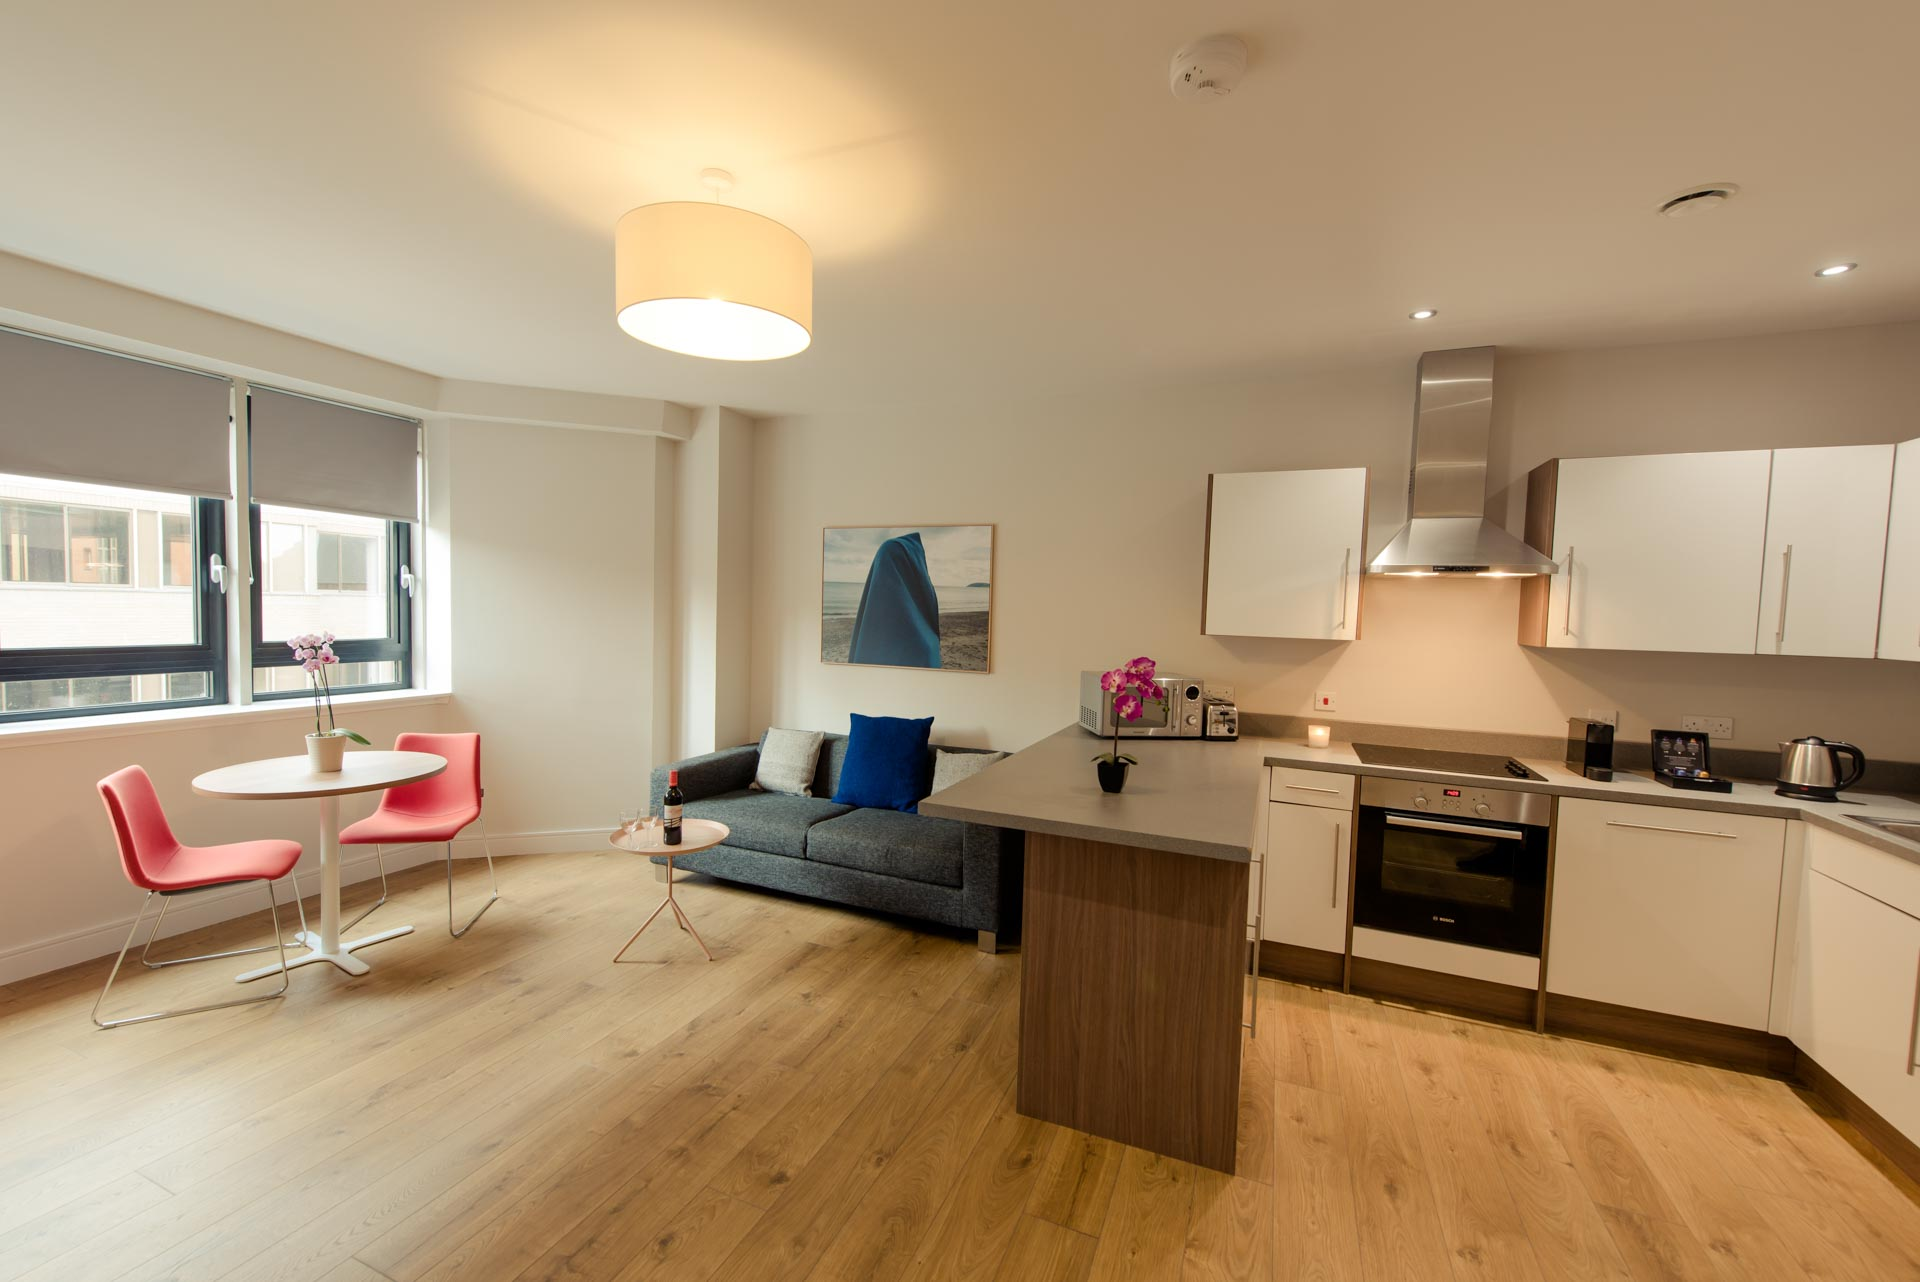 Kitchen and living area of bright one bed apartment PREMIER SUITES PLUS Glasgow Bath Street